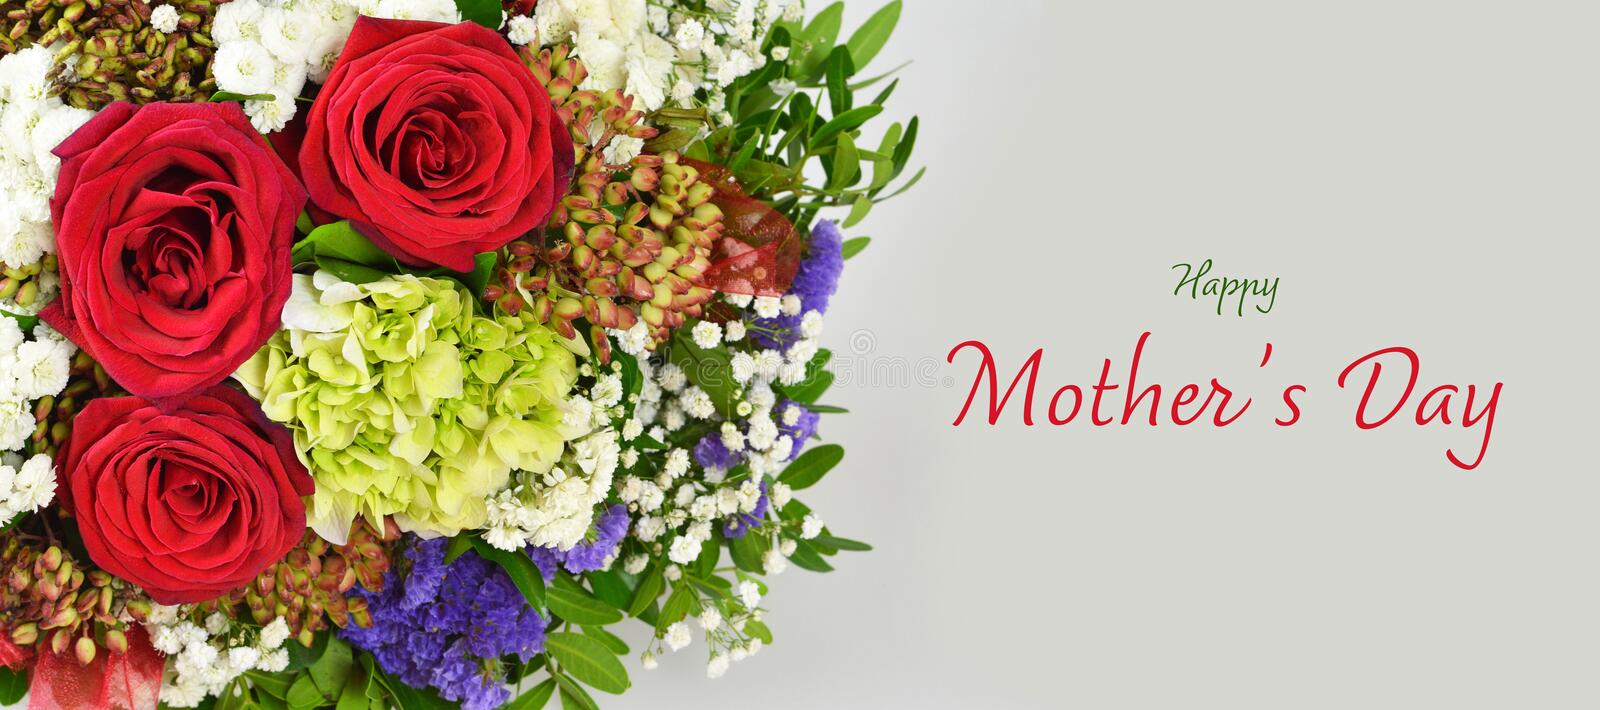 Happy Mothers Day. Mothers Day bouquet of flowers royalty free stock image